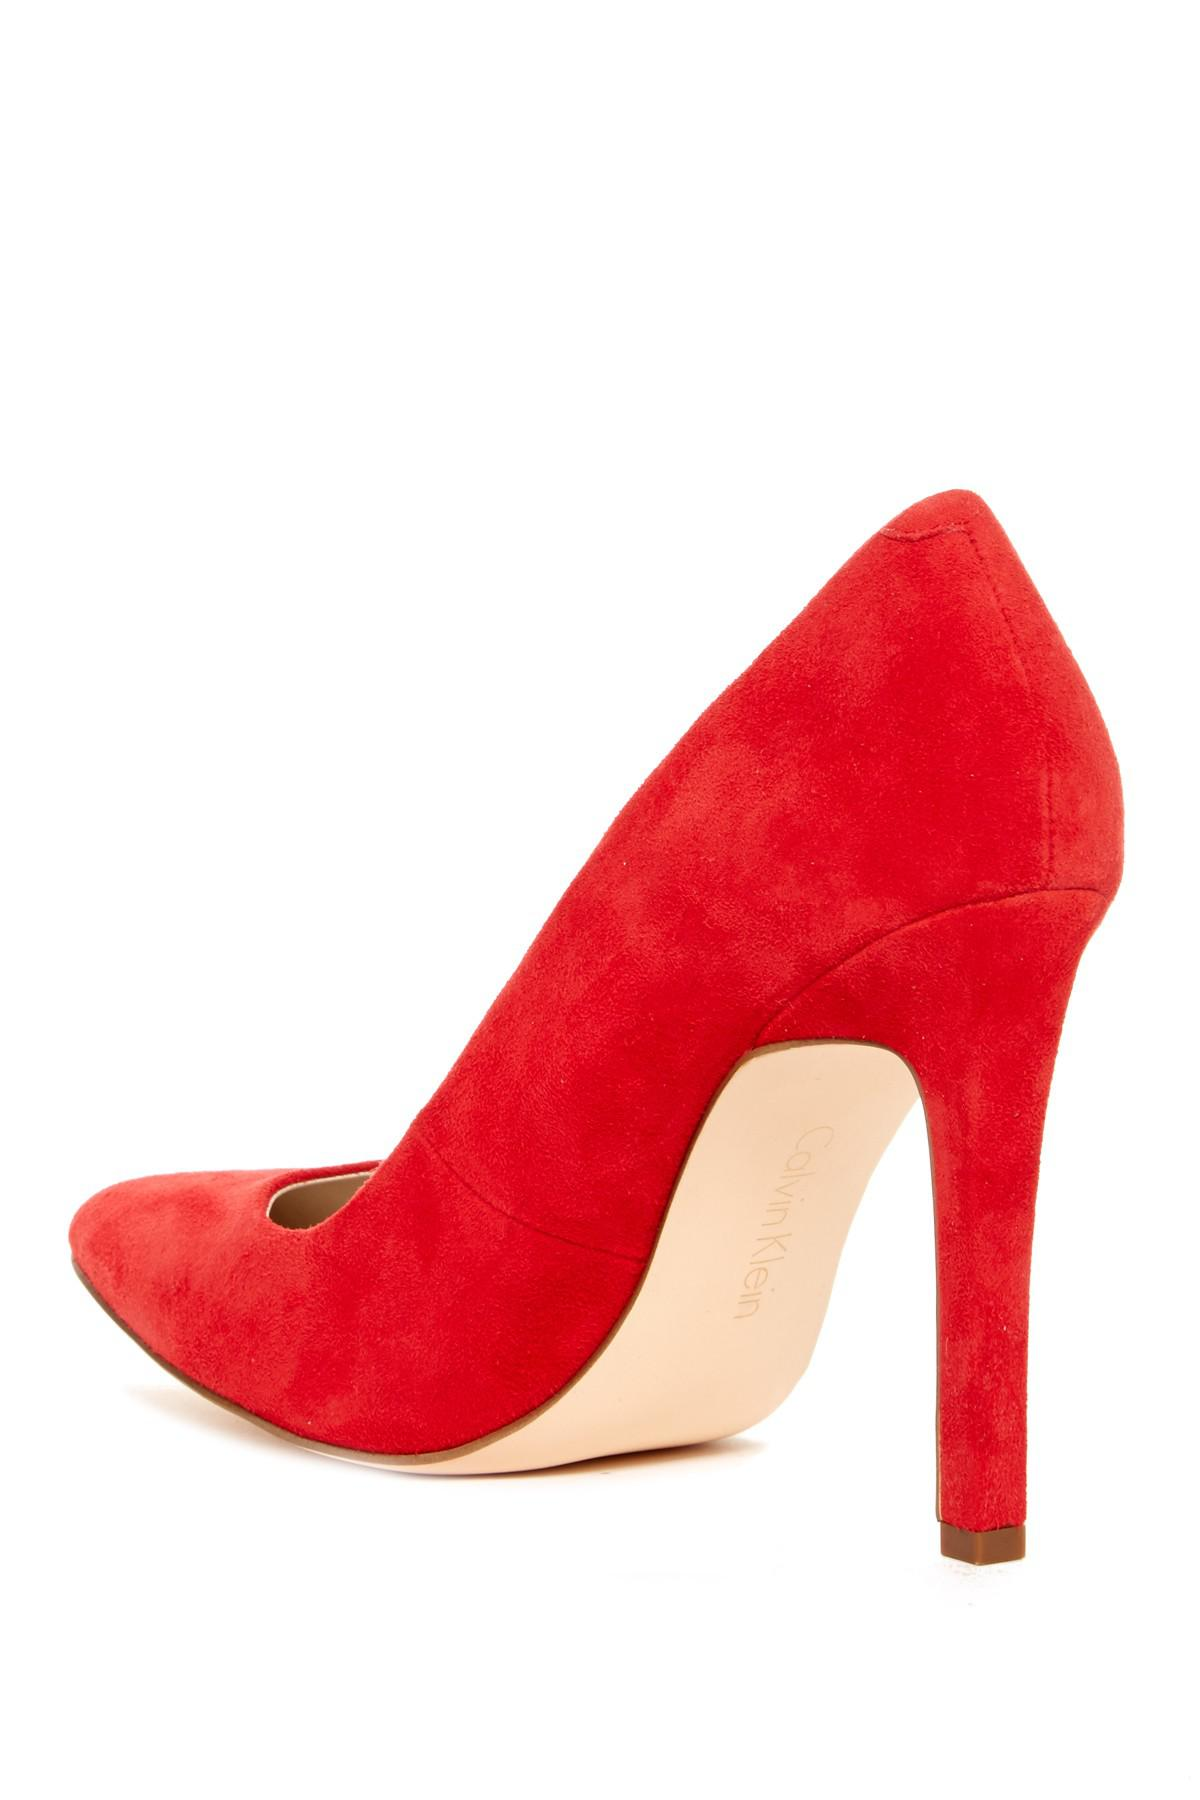 Dune Red Suede Shoes